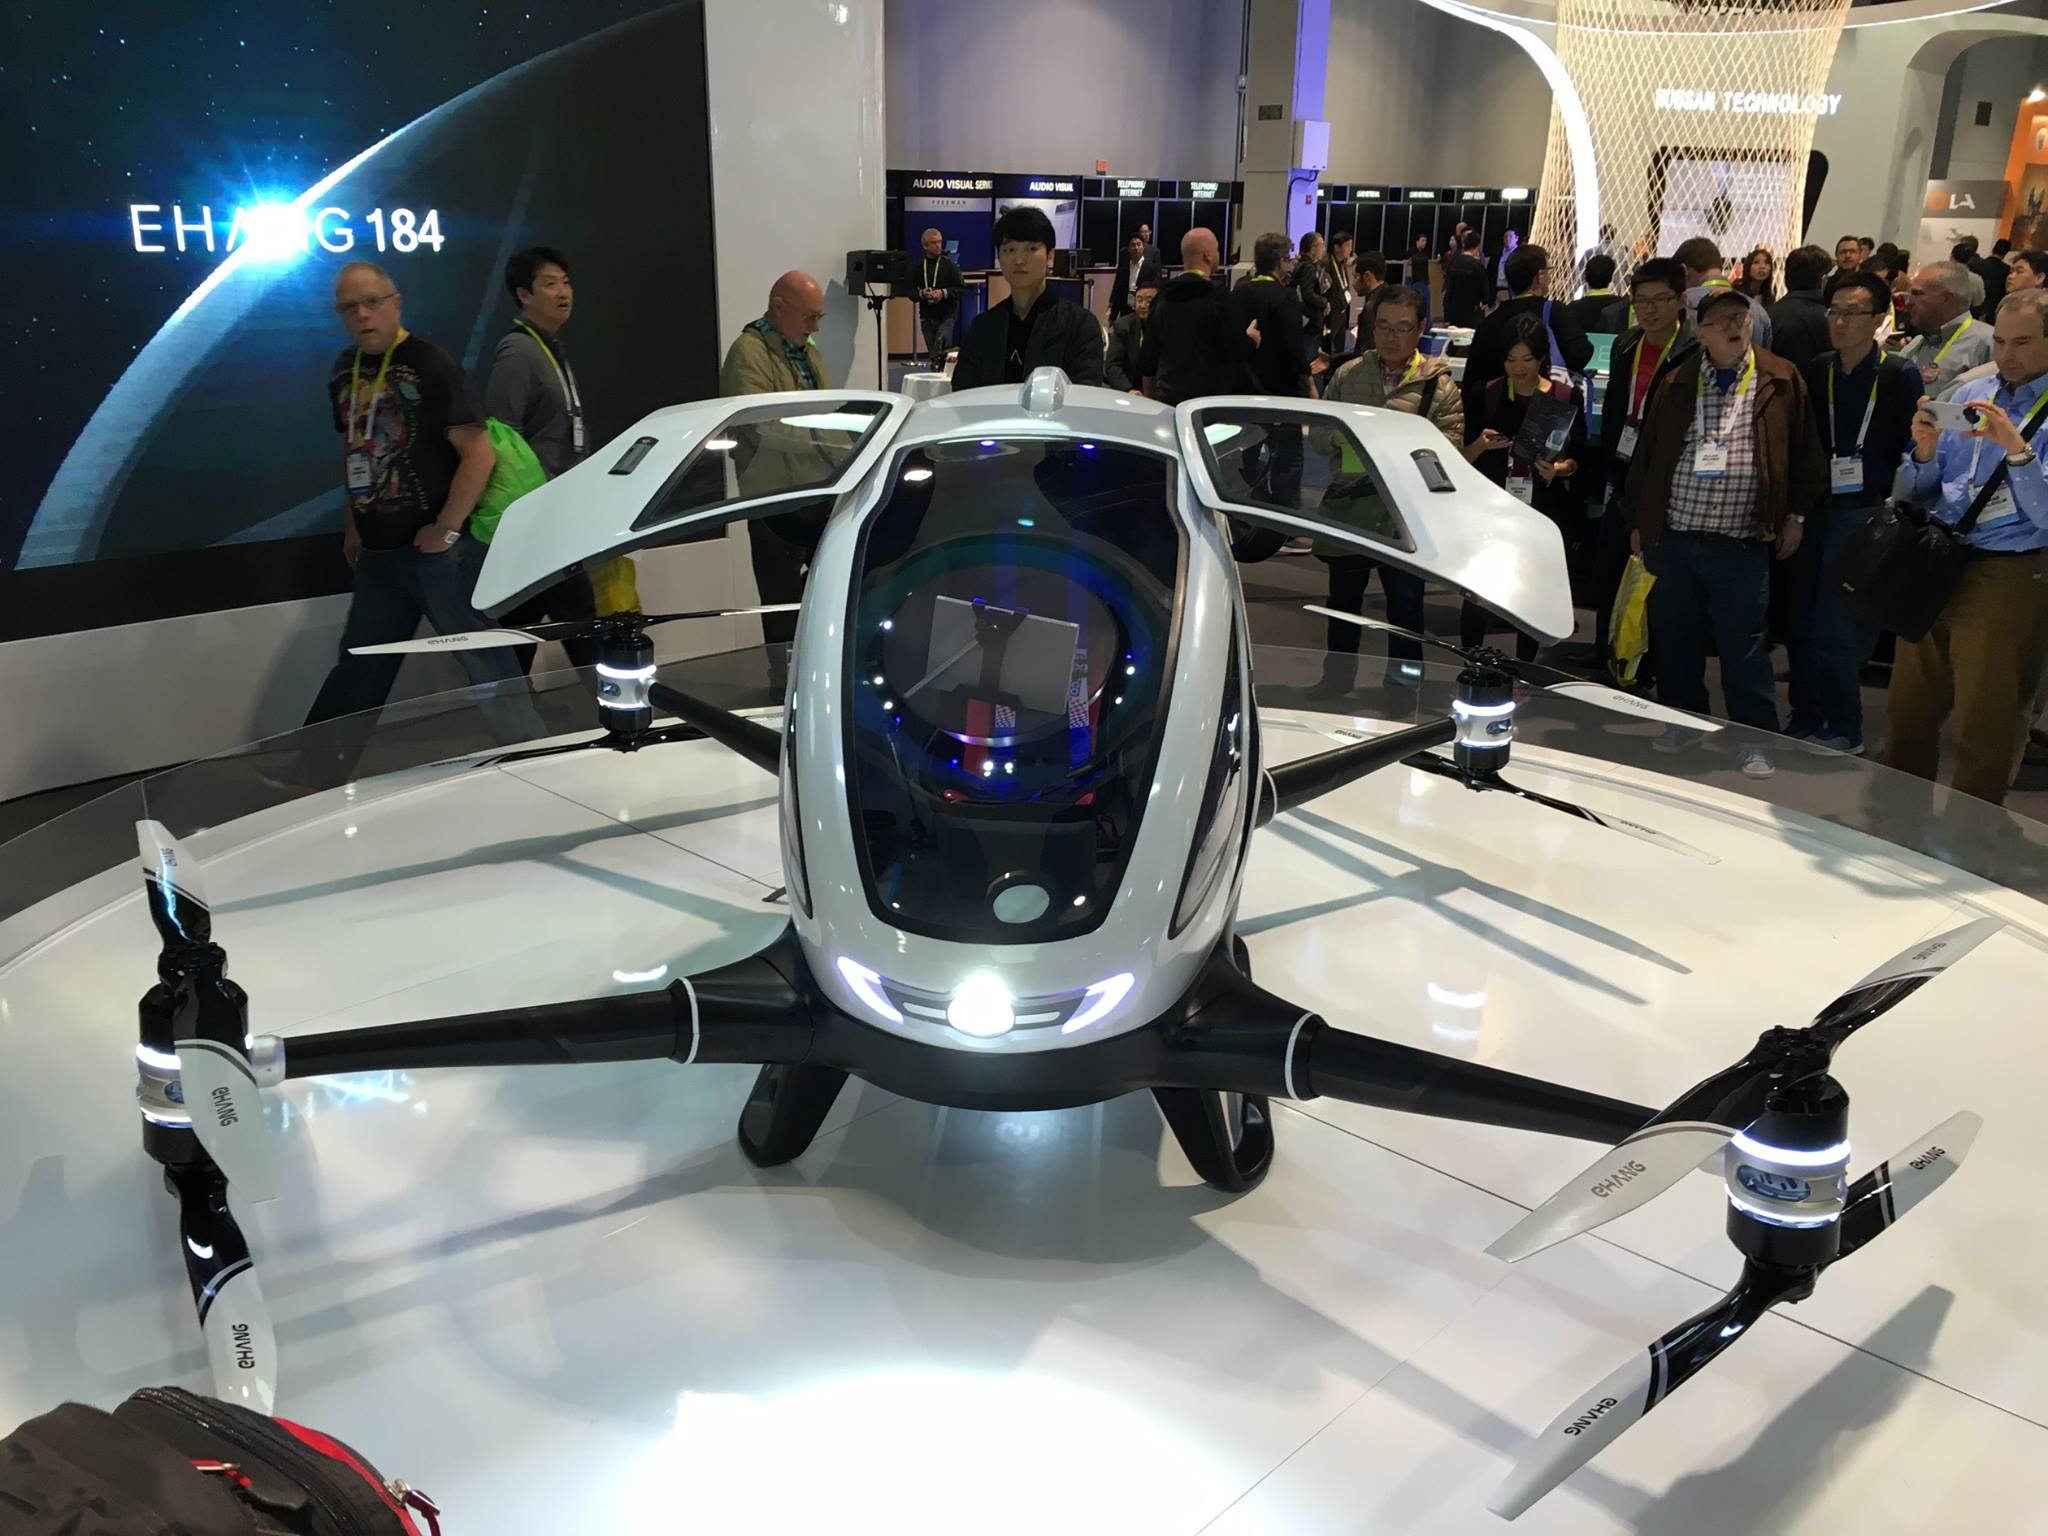 EHang stunned the public conscious with the unveiling of the EHang 184 air taxi at CES 2016.